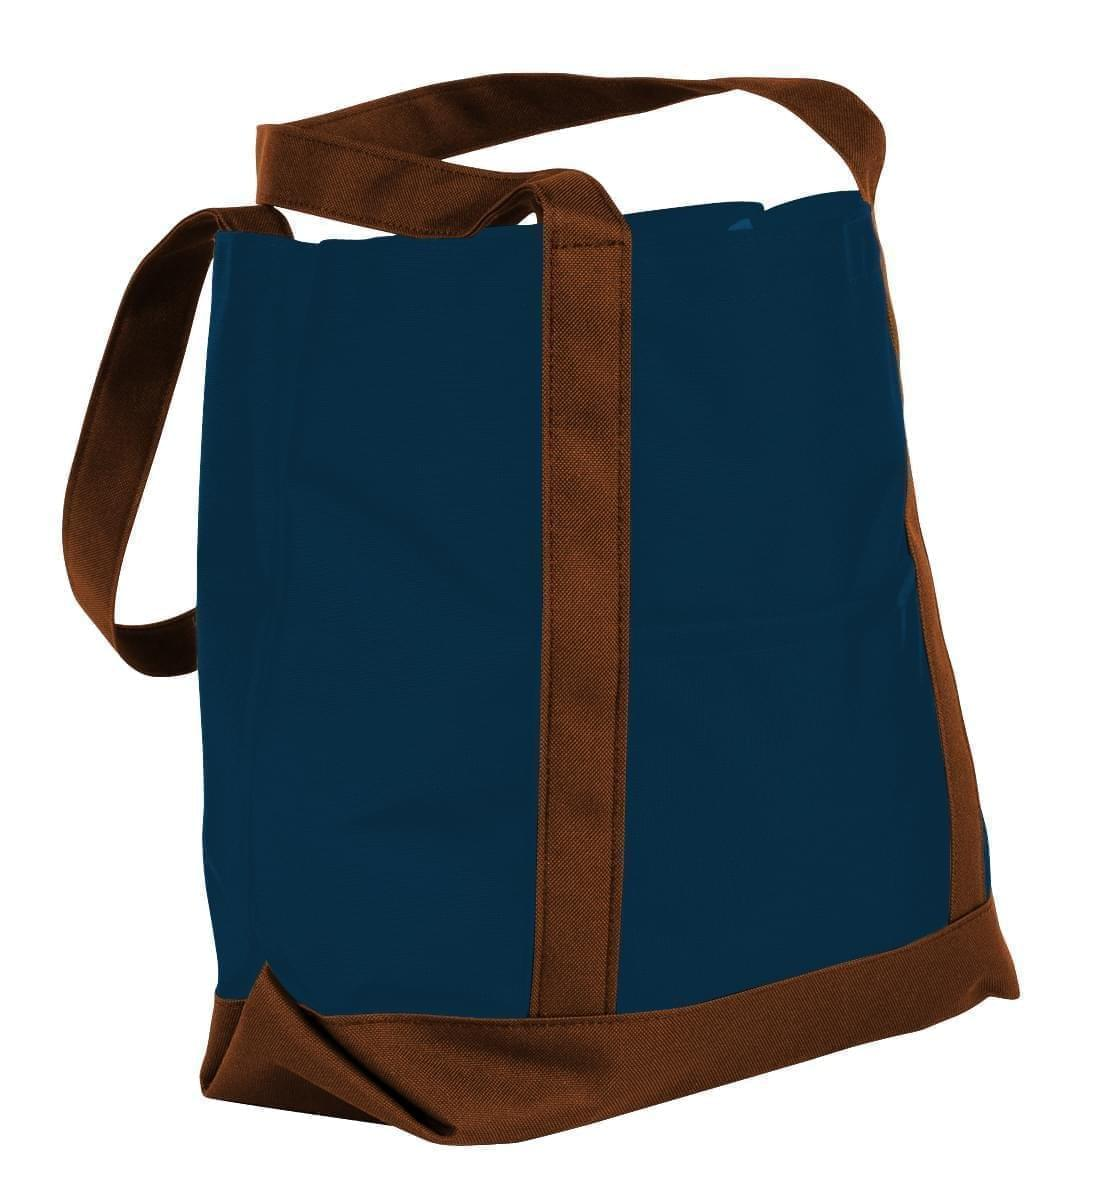 USA Made Nylon Poly Boat Tote Bags, Navy-Brown, XAACL1UAWD